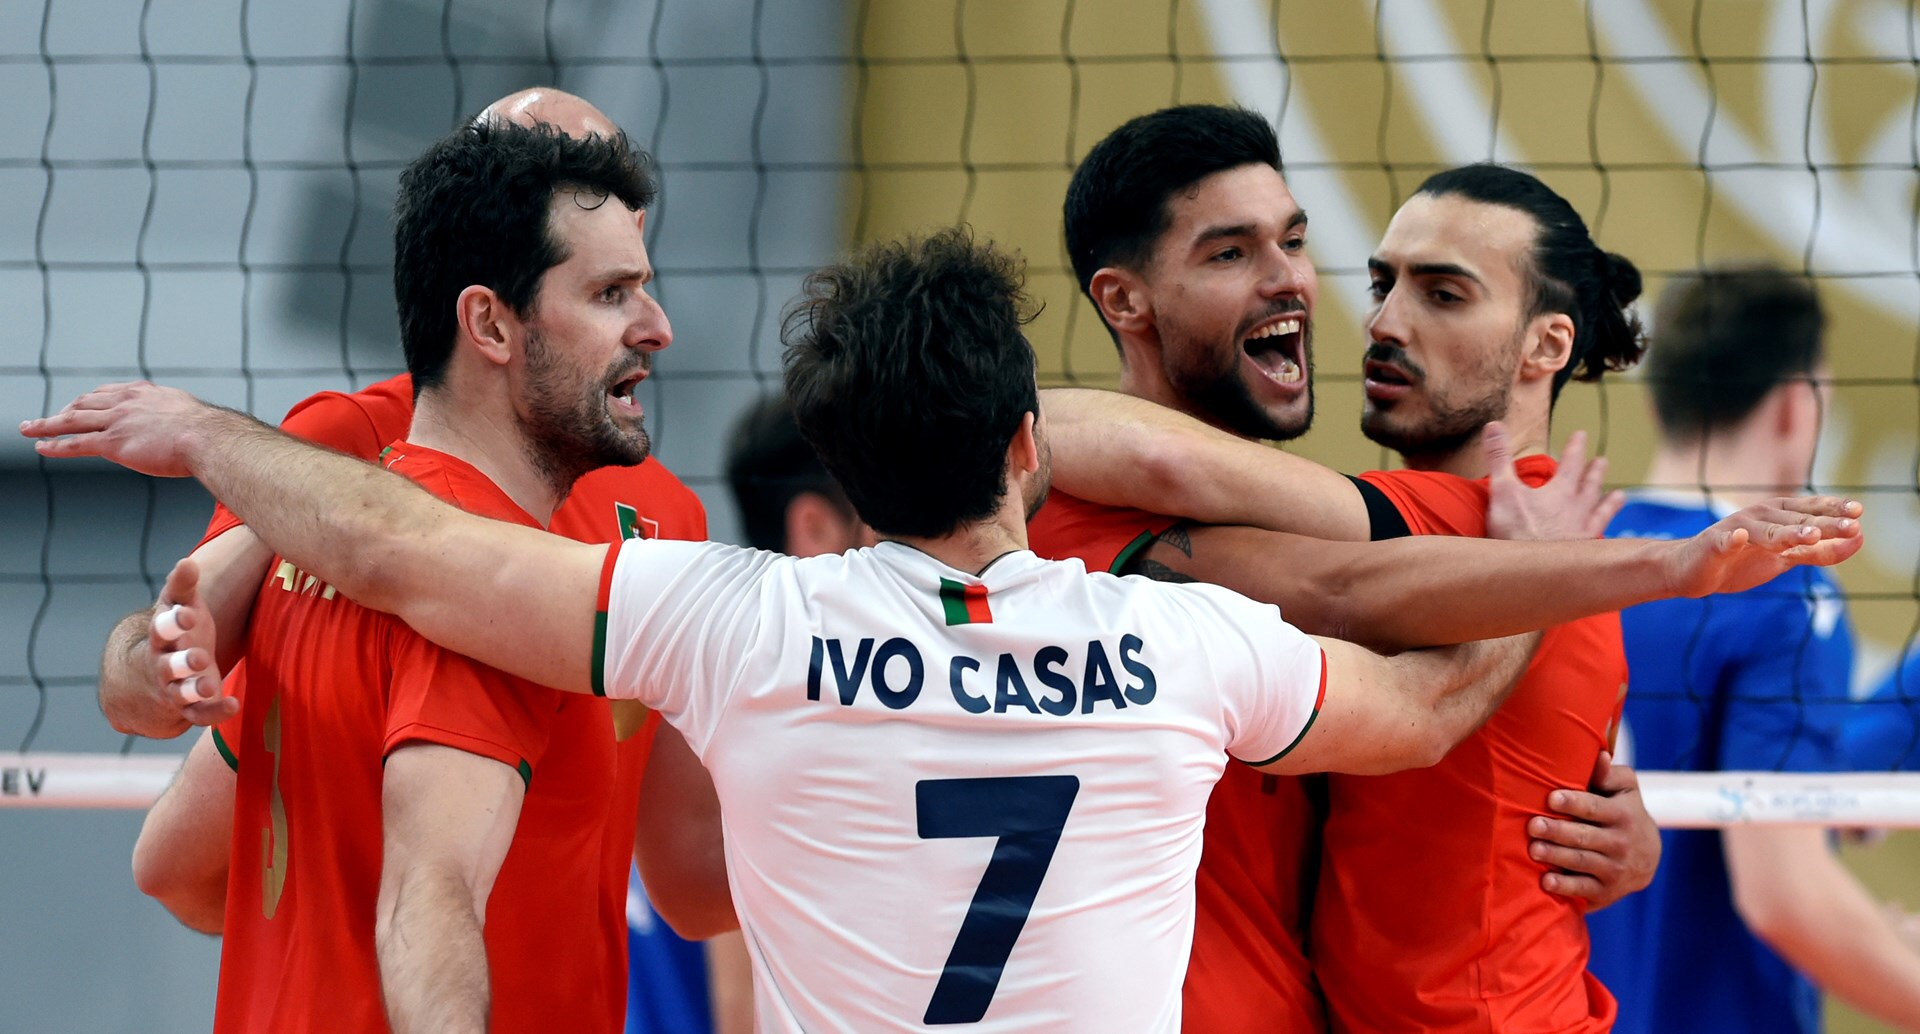 EuroVolley2021 Qualifiers: all results of May 7